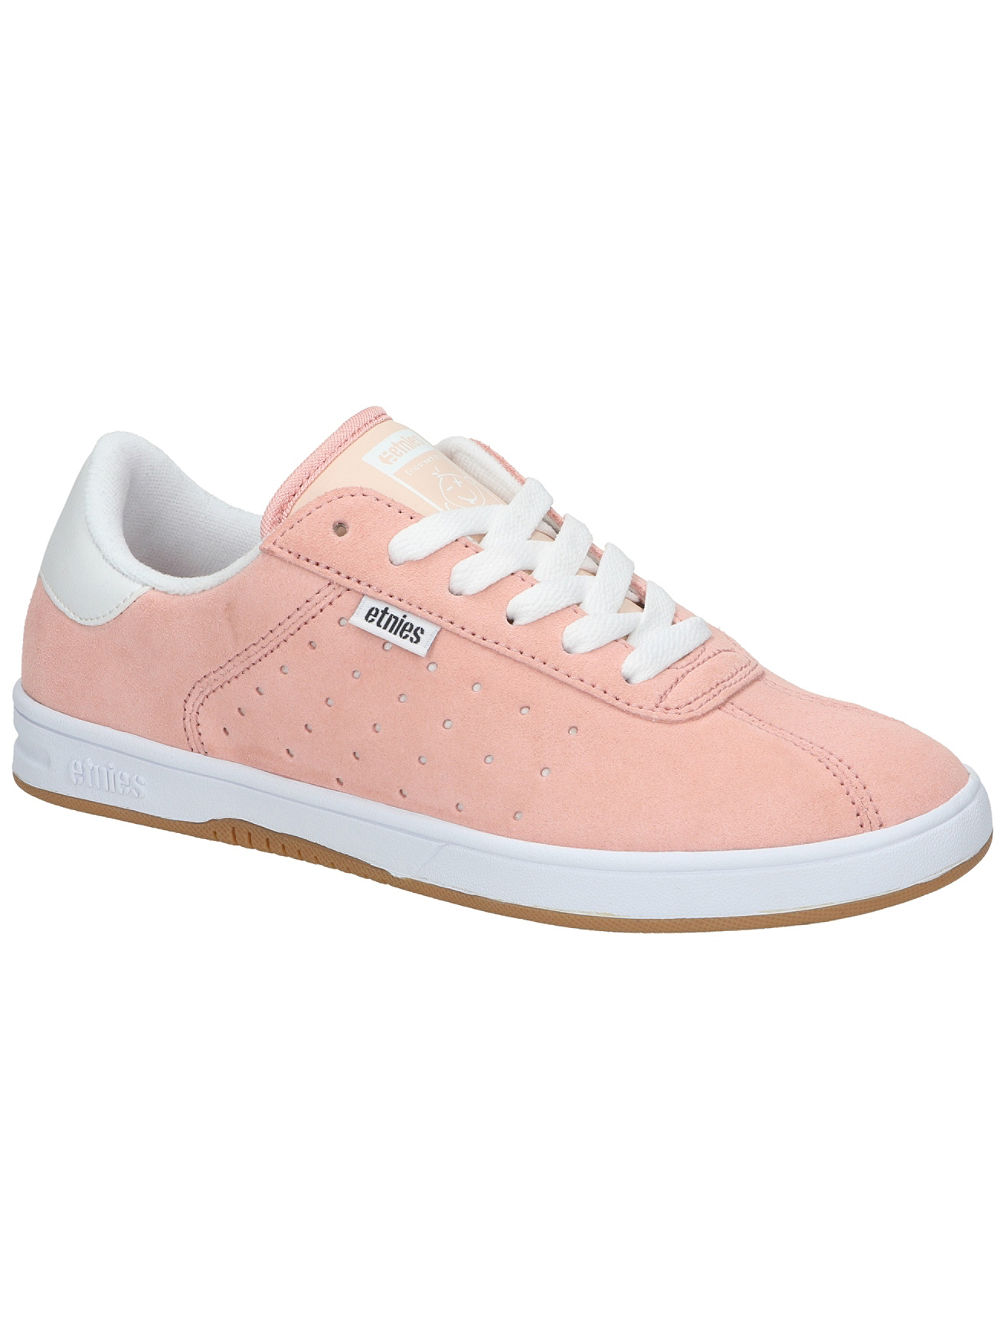 The Scam Sneakers Frauen